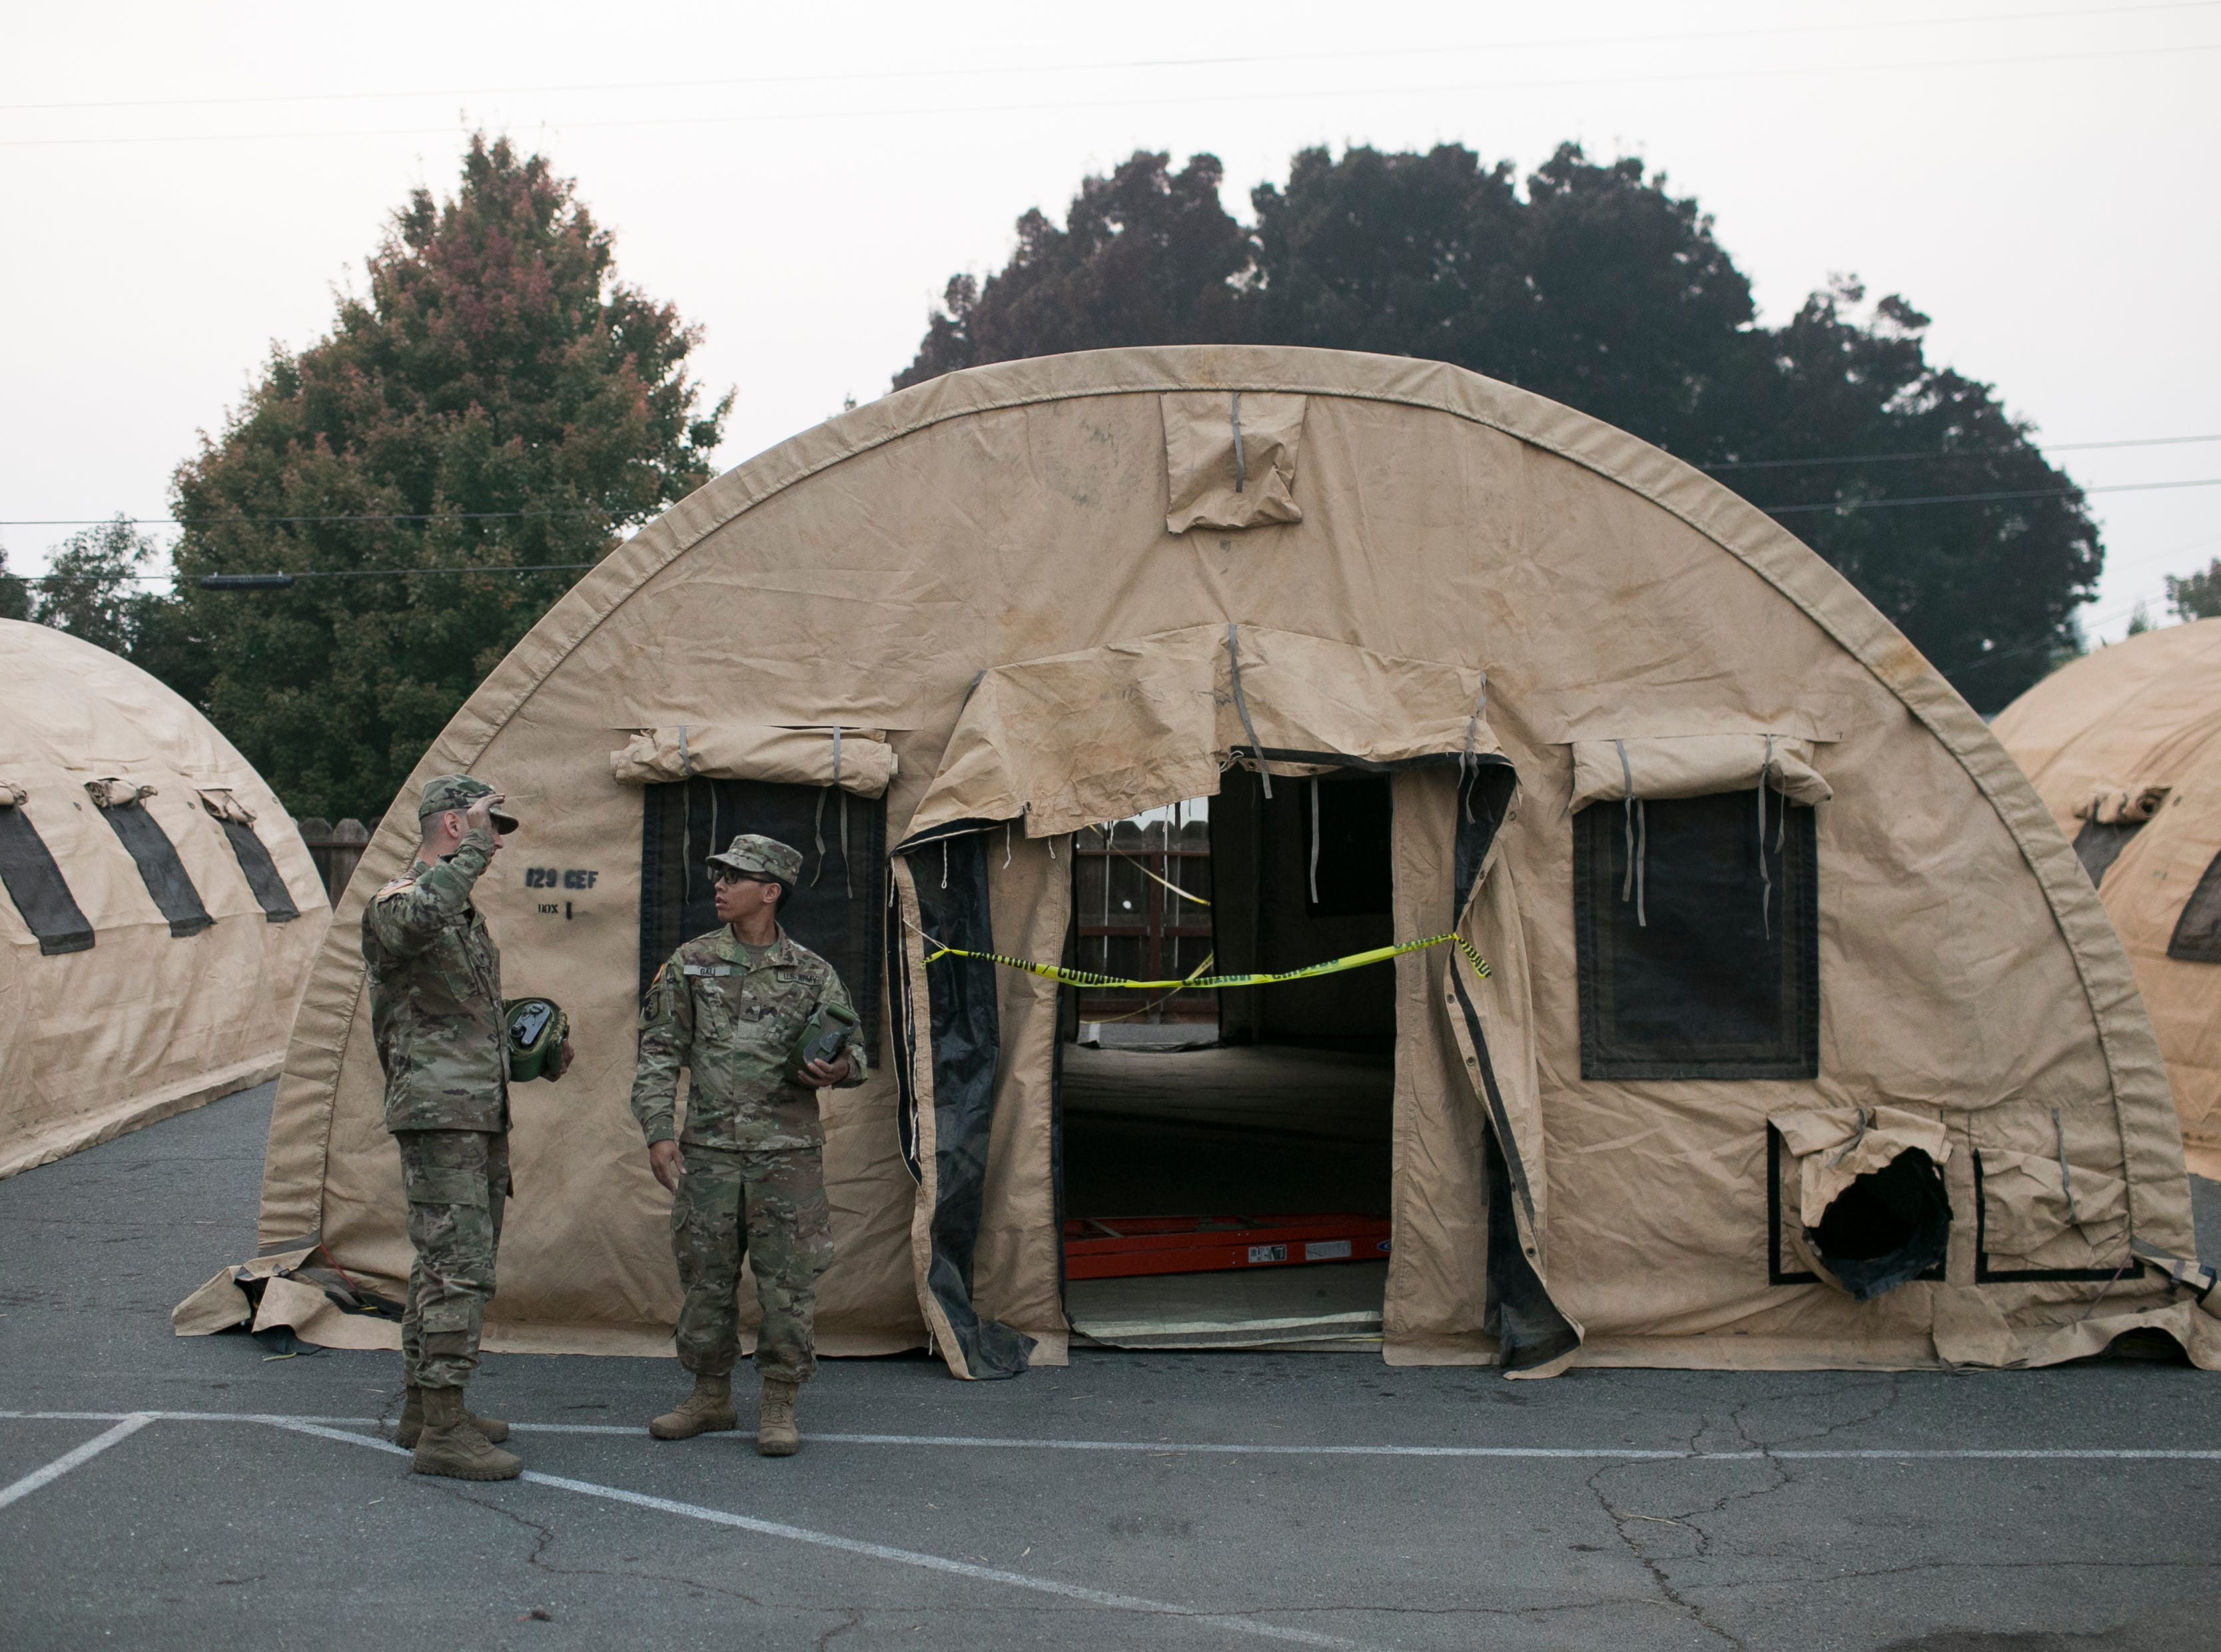 Members of the Air National Guard out of Fresno arrive at the East Avenue Church Shelter to help set up isolation tents in Chico, California on November 17, 2018. According to volunteers at the shelter, the isolation tents had been dropped off by government officials three days before but had not been set up. Nearly a full week after the shelter had opened the three tents sat empty and unusable.